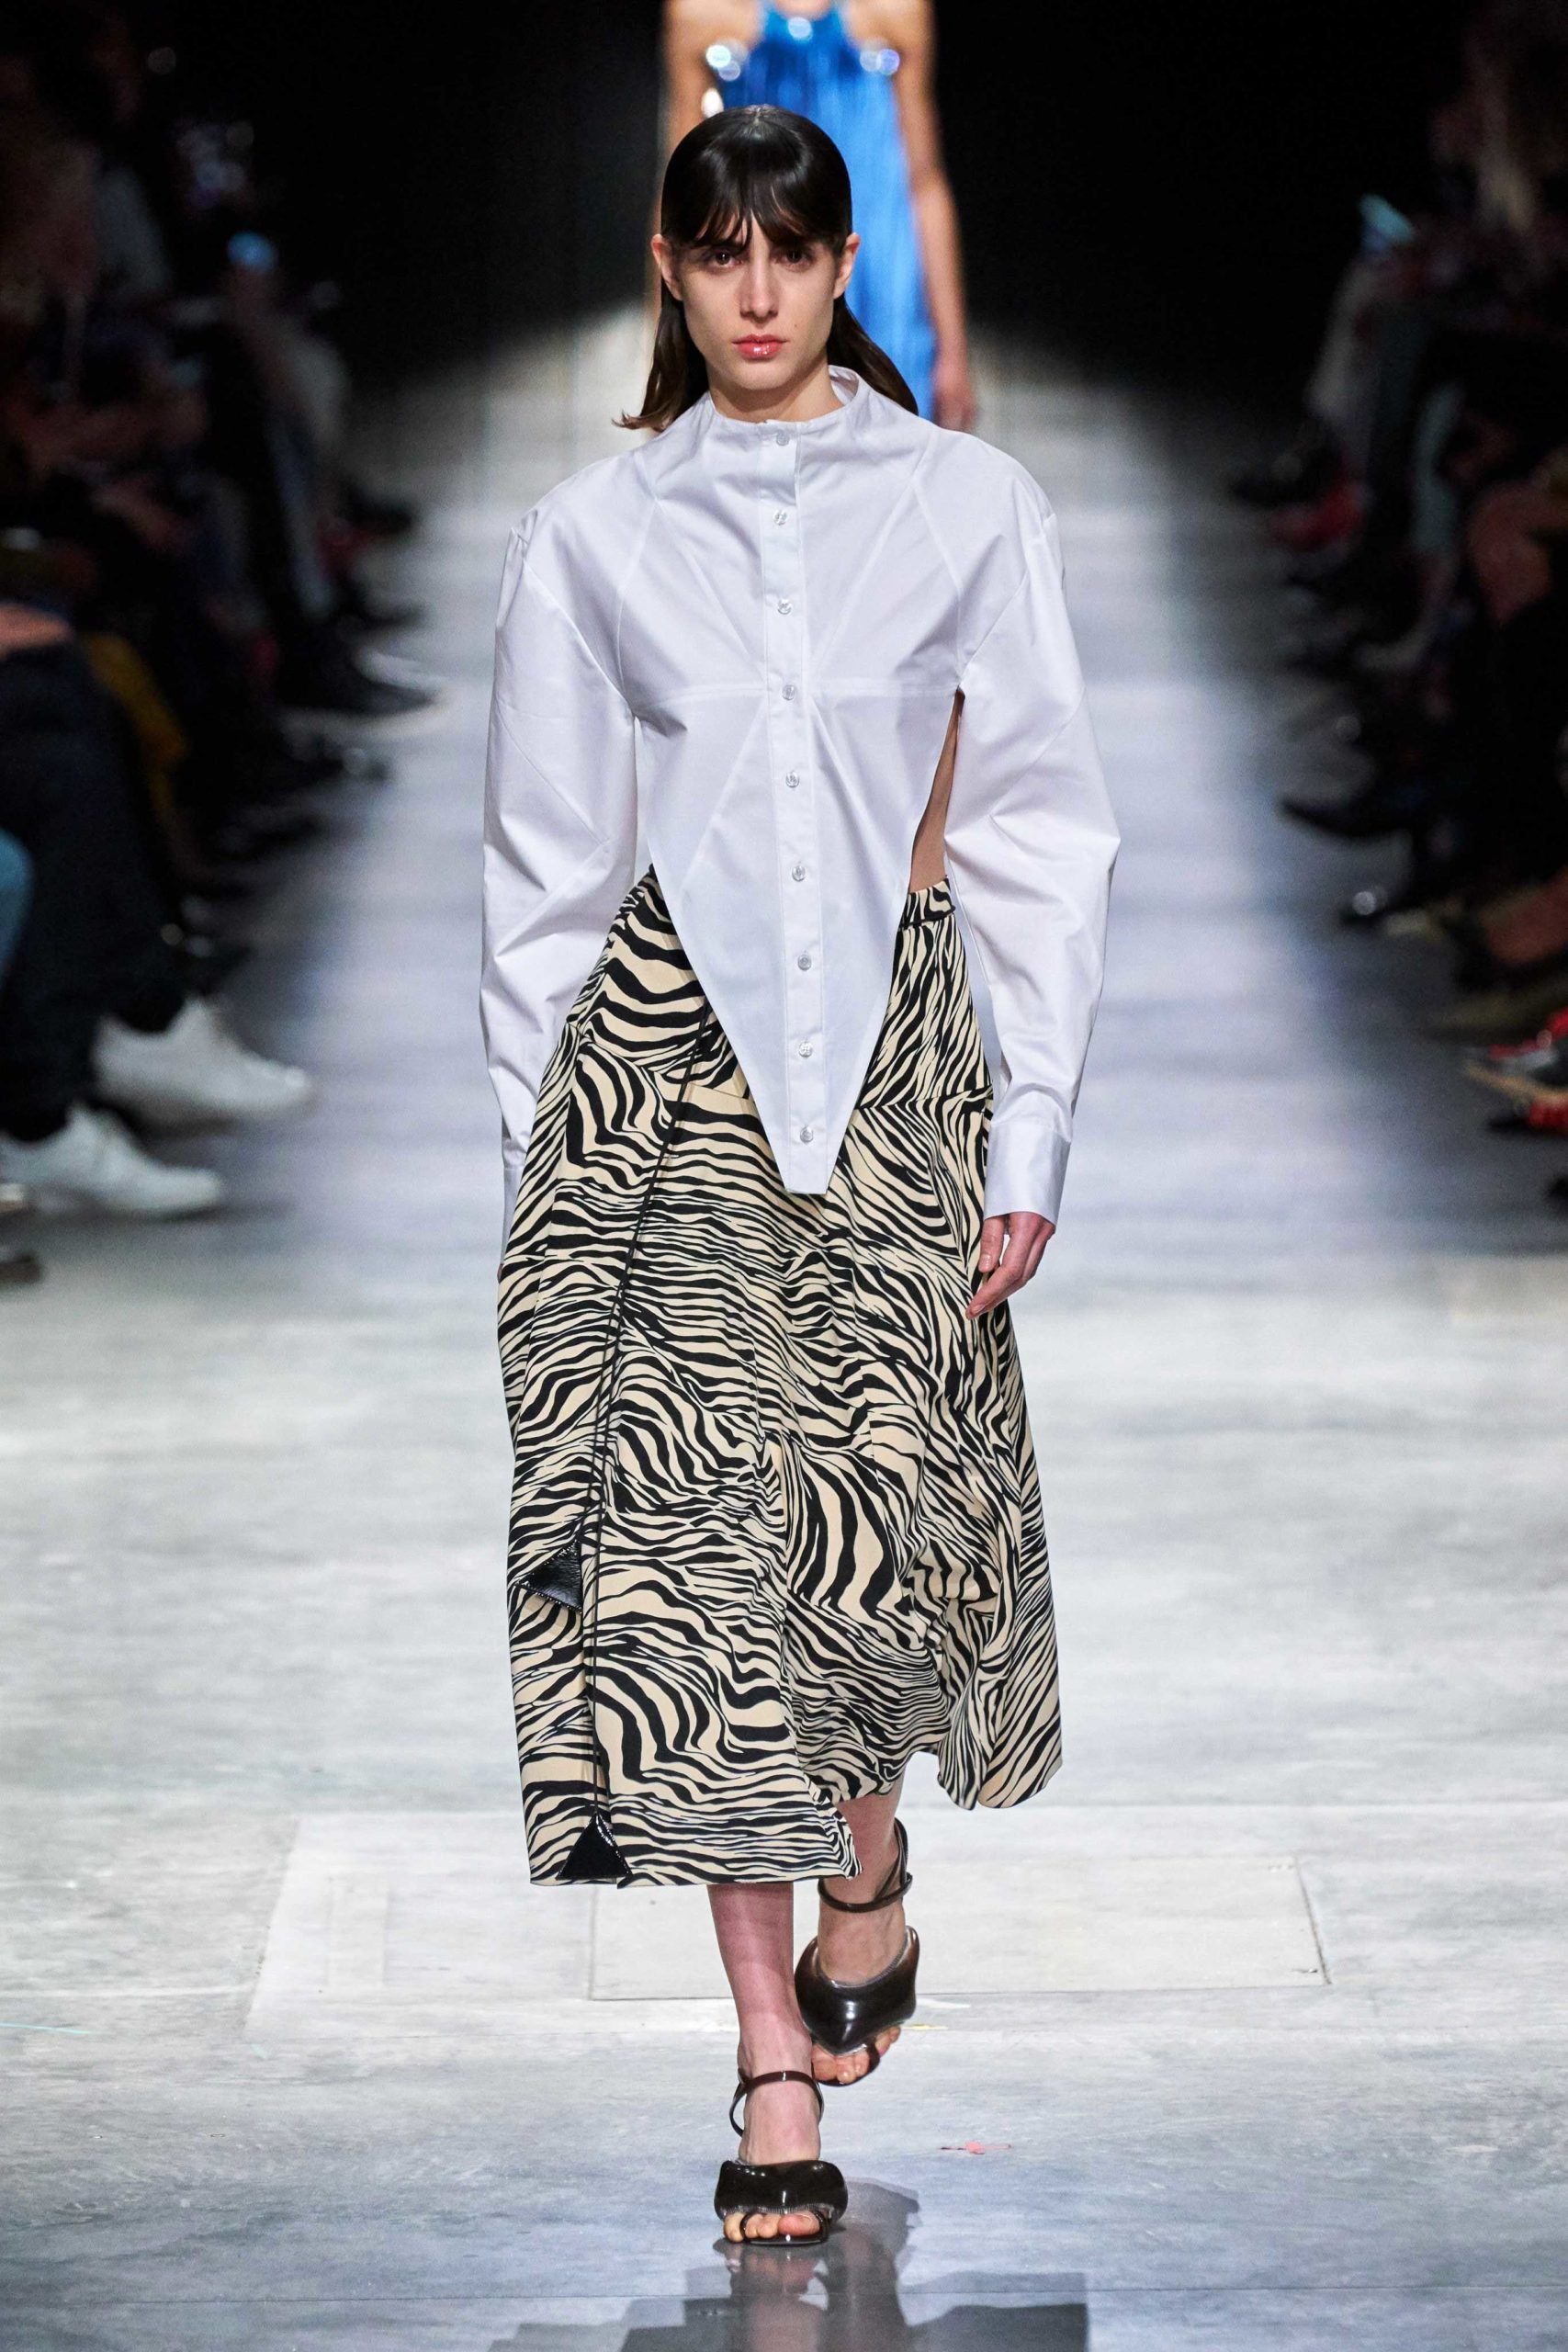 Christopher Kane Fall Winter 2020 trends runway coverage Ready To Wear Vogue cut out wild animal